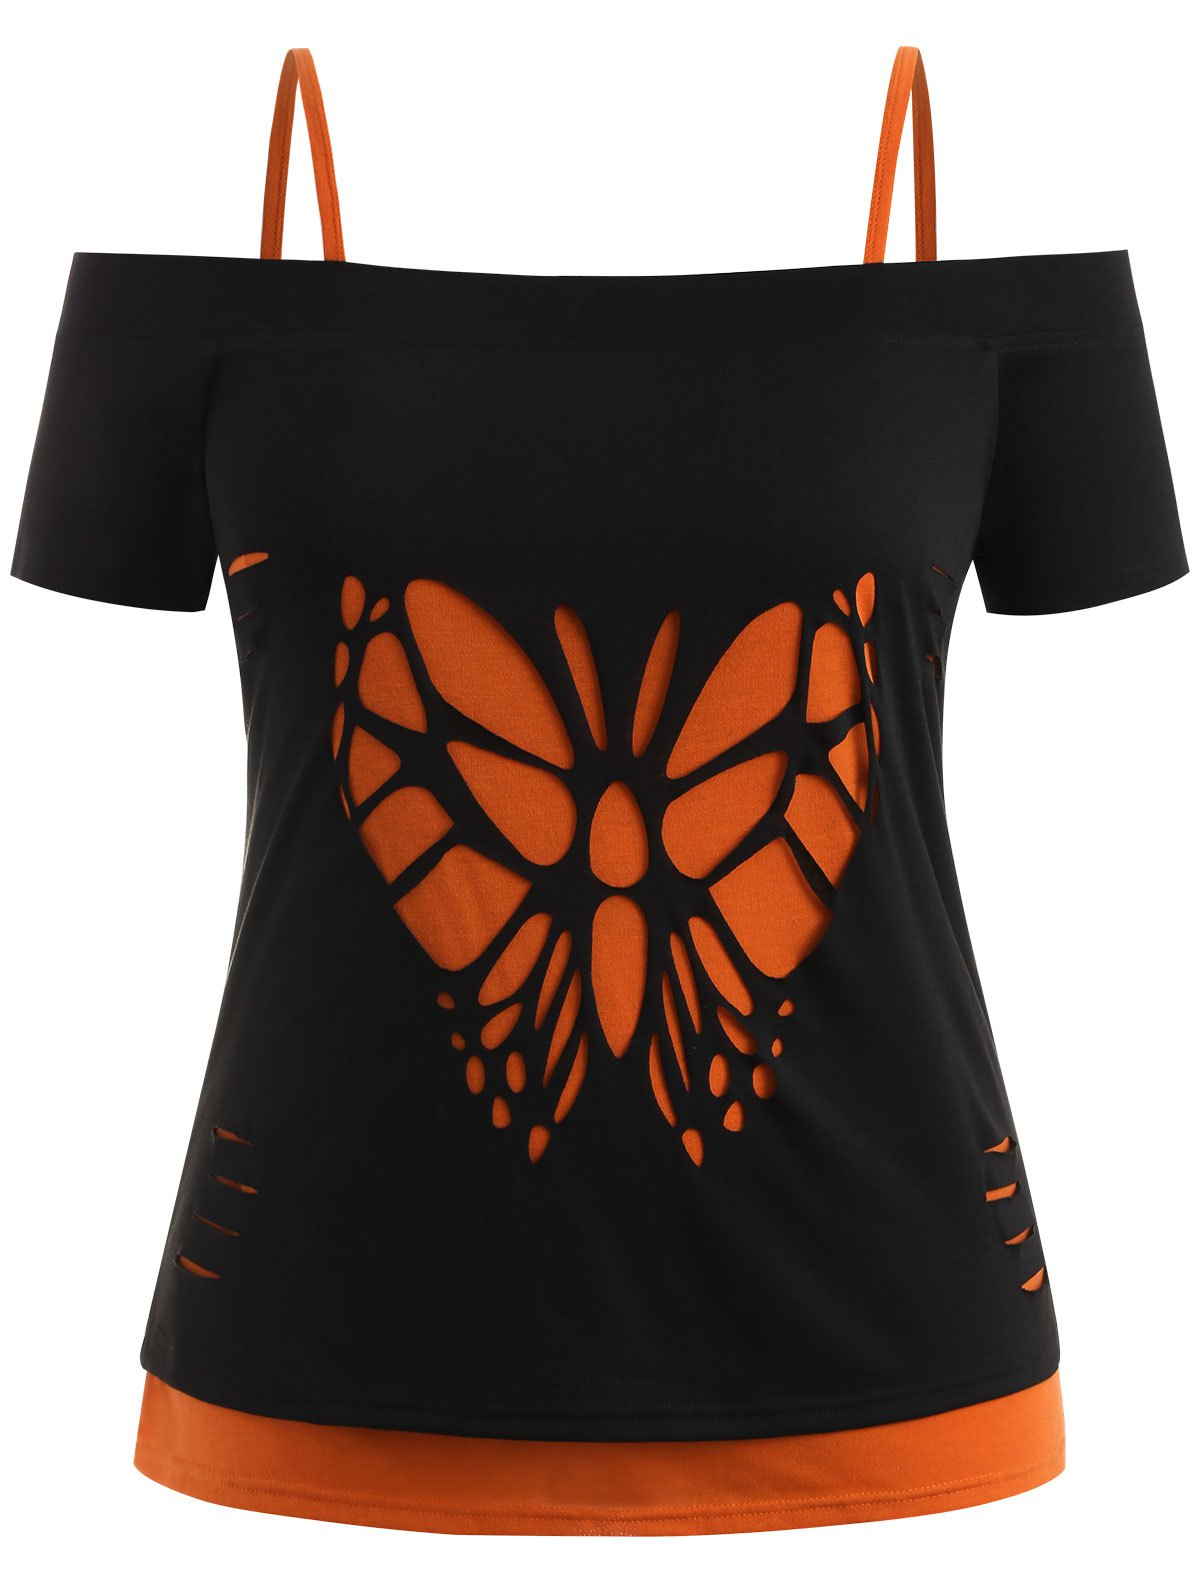 Plus Size Butterfly Ripped Tee with Camisole все цены